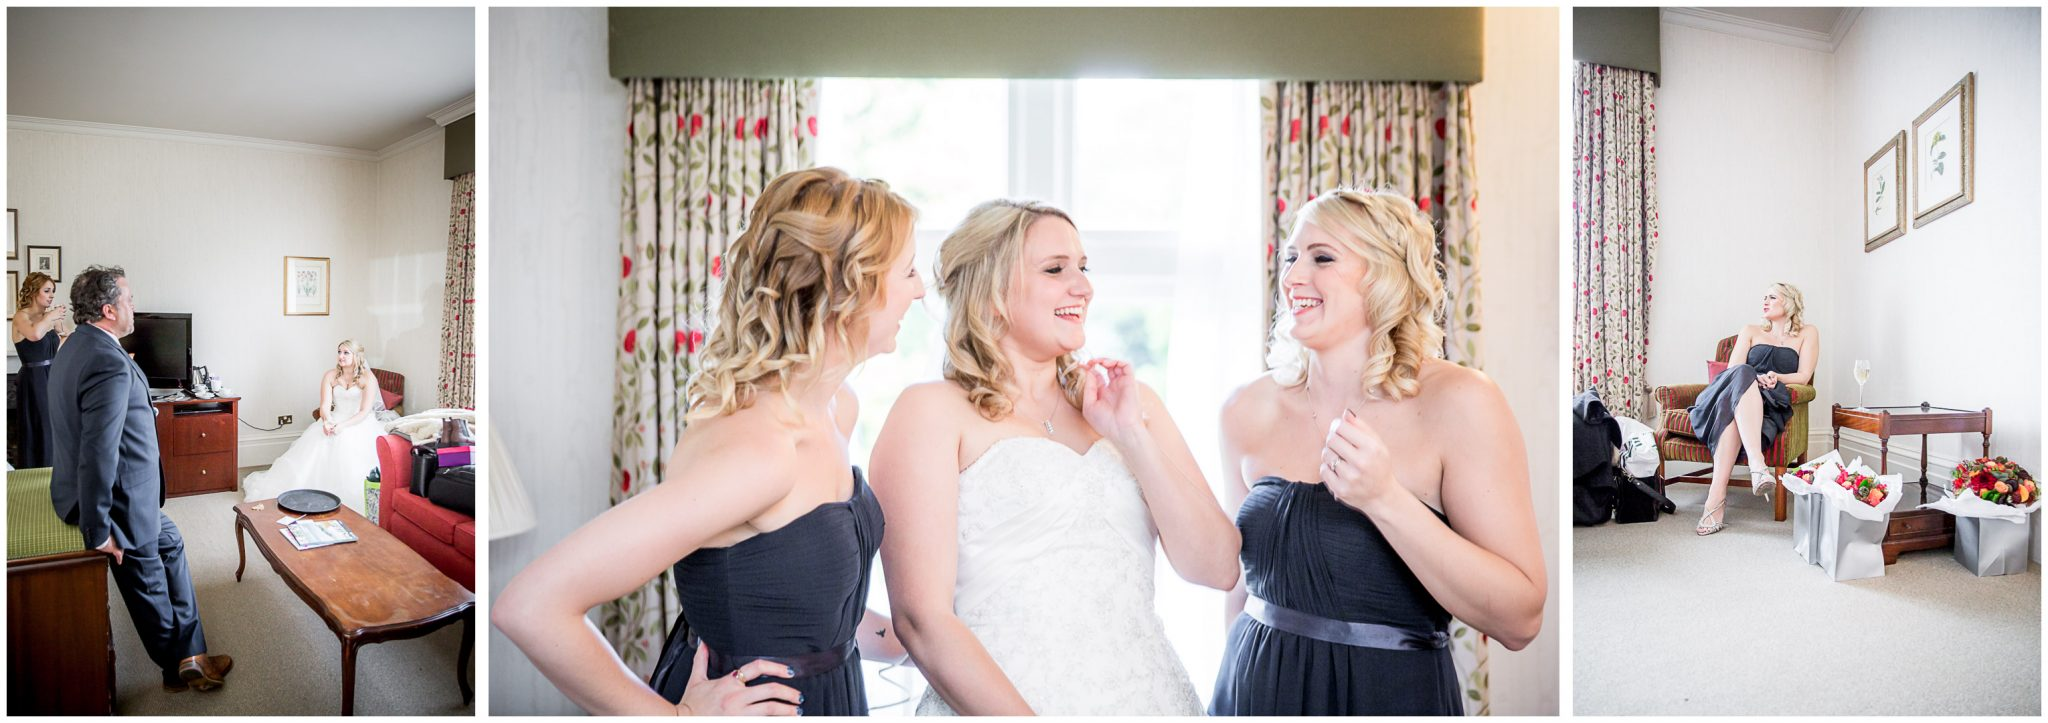 Audleys Wood wedding photograhy bride with bridesmaids before ceremony